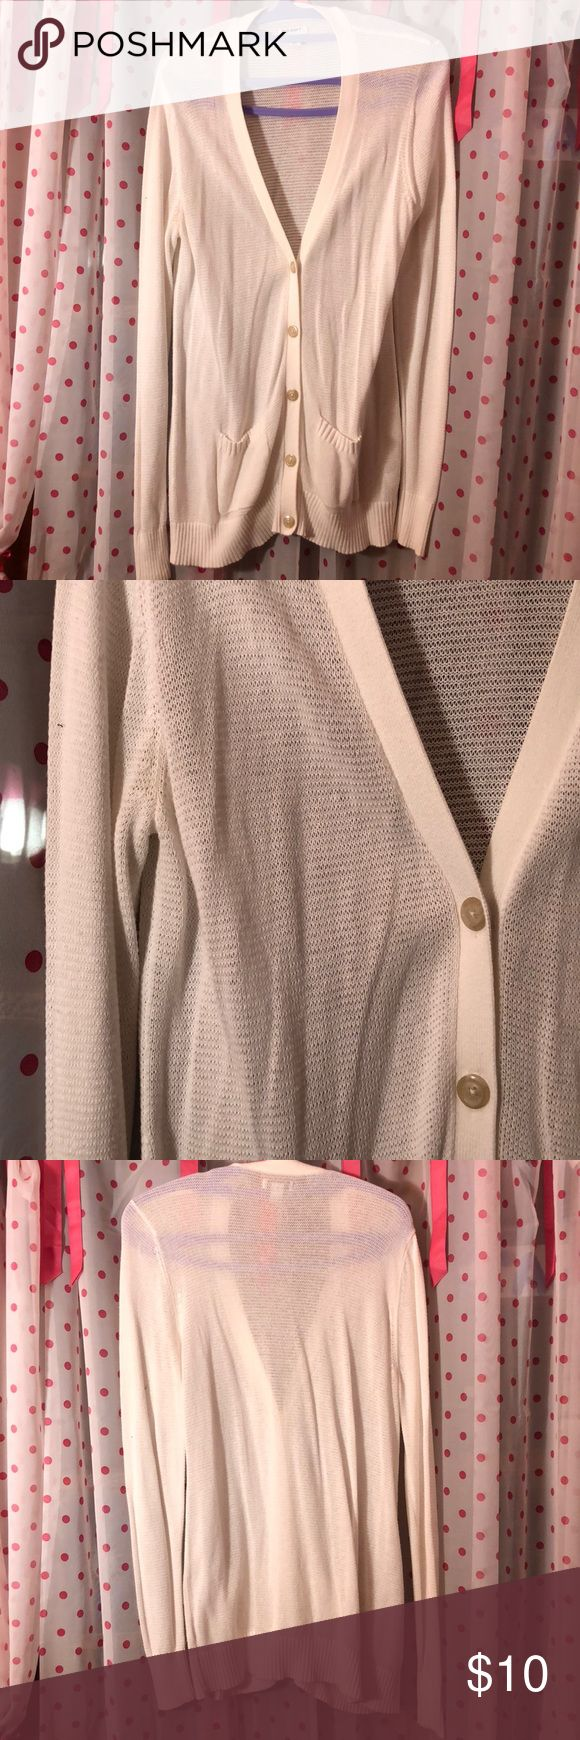 Long white cardigan White Old Navy cardigan almost mesh like, in great condition! 58% cotton 42% viscose Old Navy Sweaters Cardigans